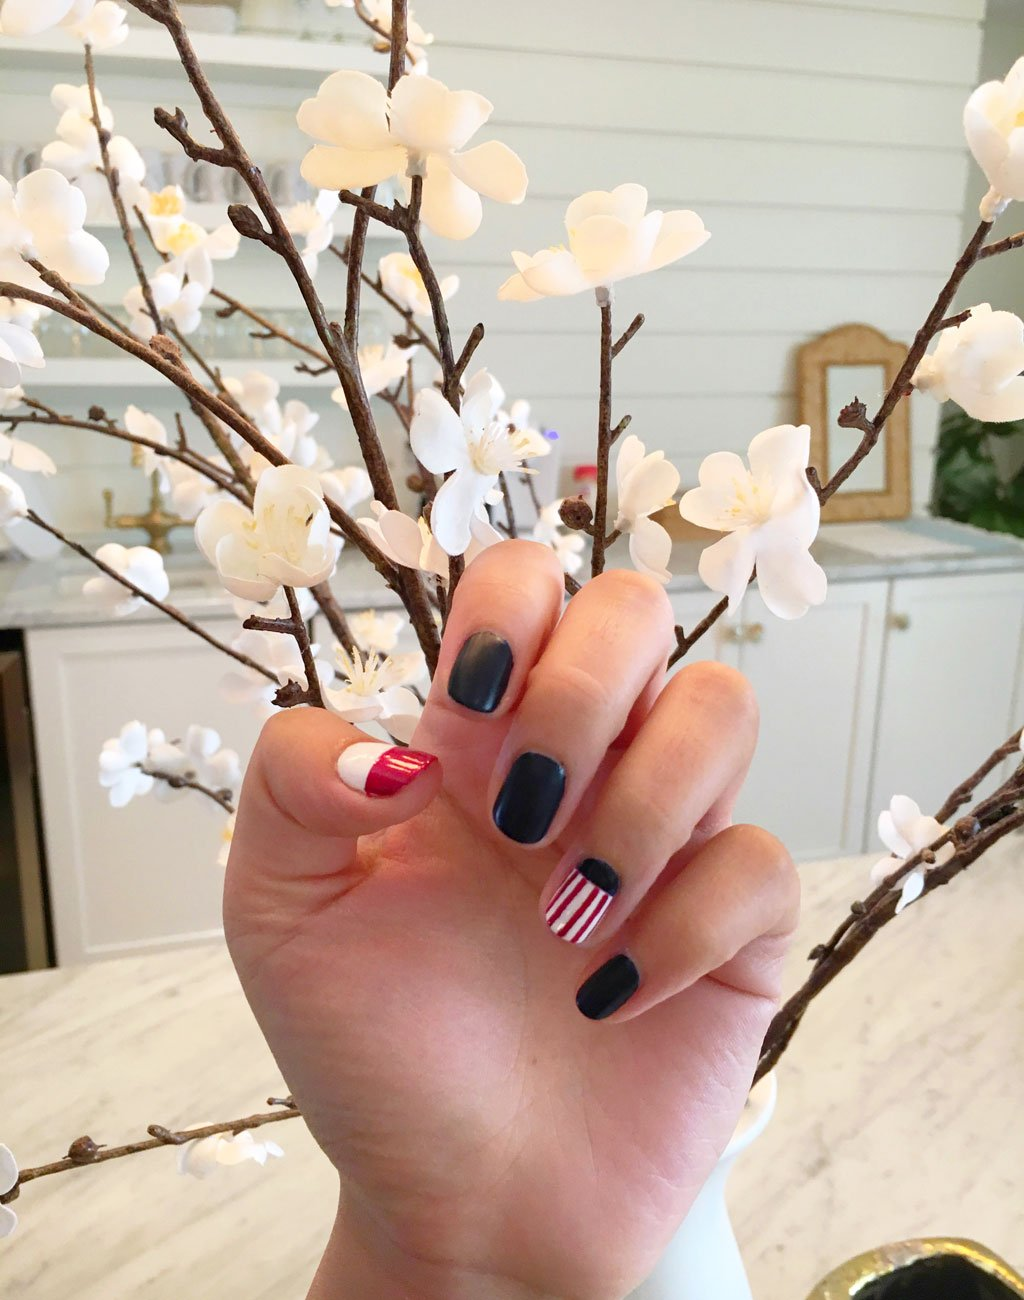 Nail art and photo courtesy Varnish Lane.